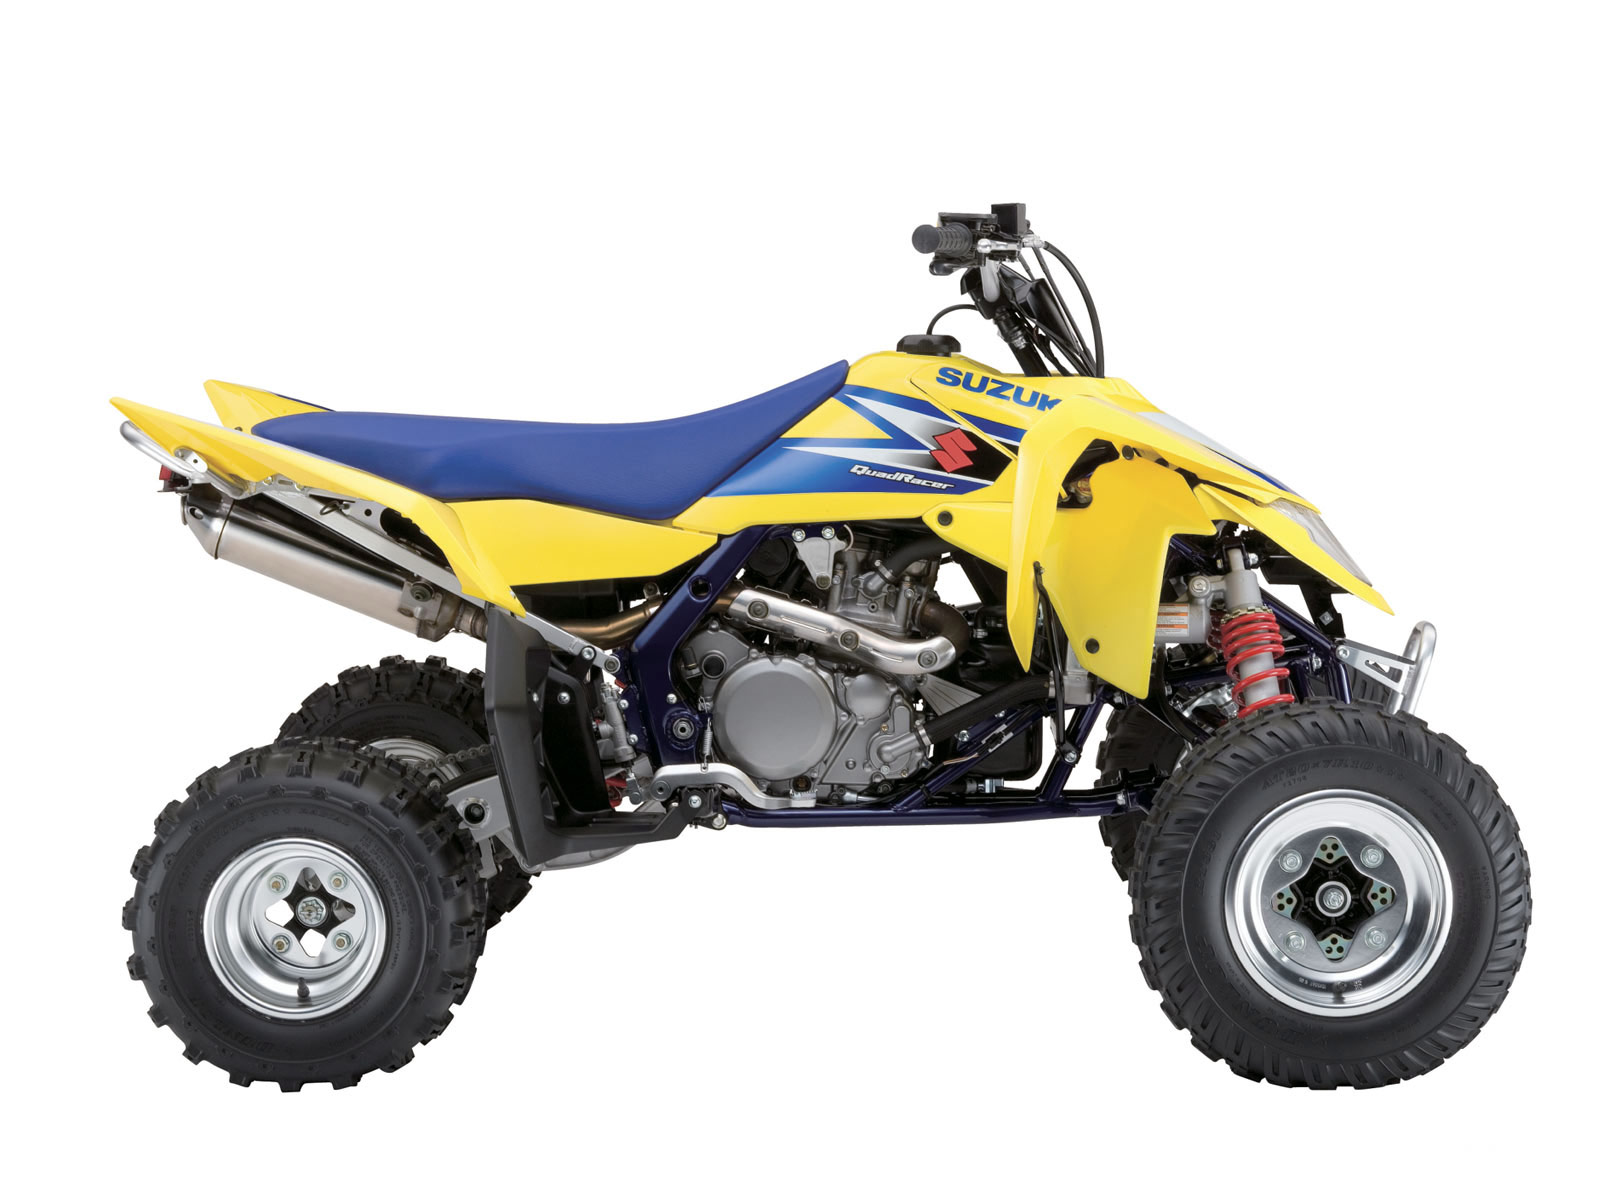 2007 Suzuki Ltr 450 Wiring Diagram Buick Stereo Specifications Gallery